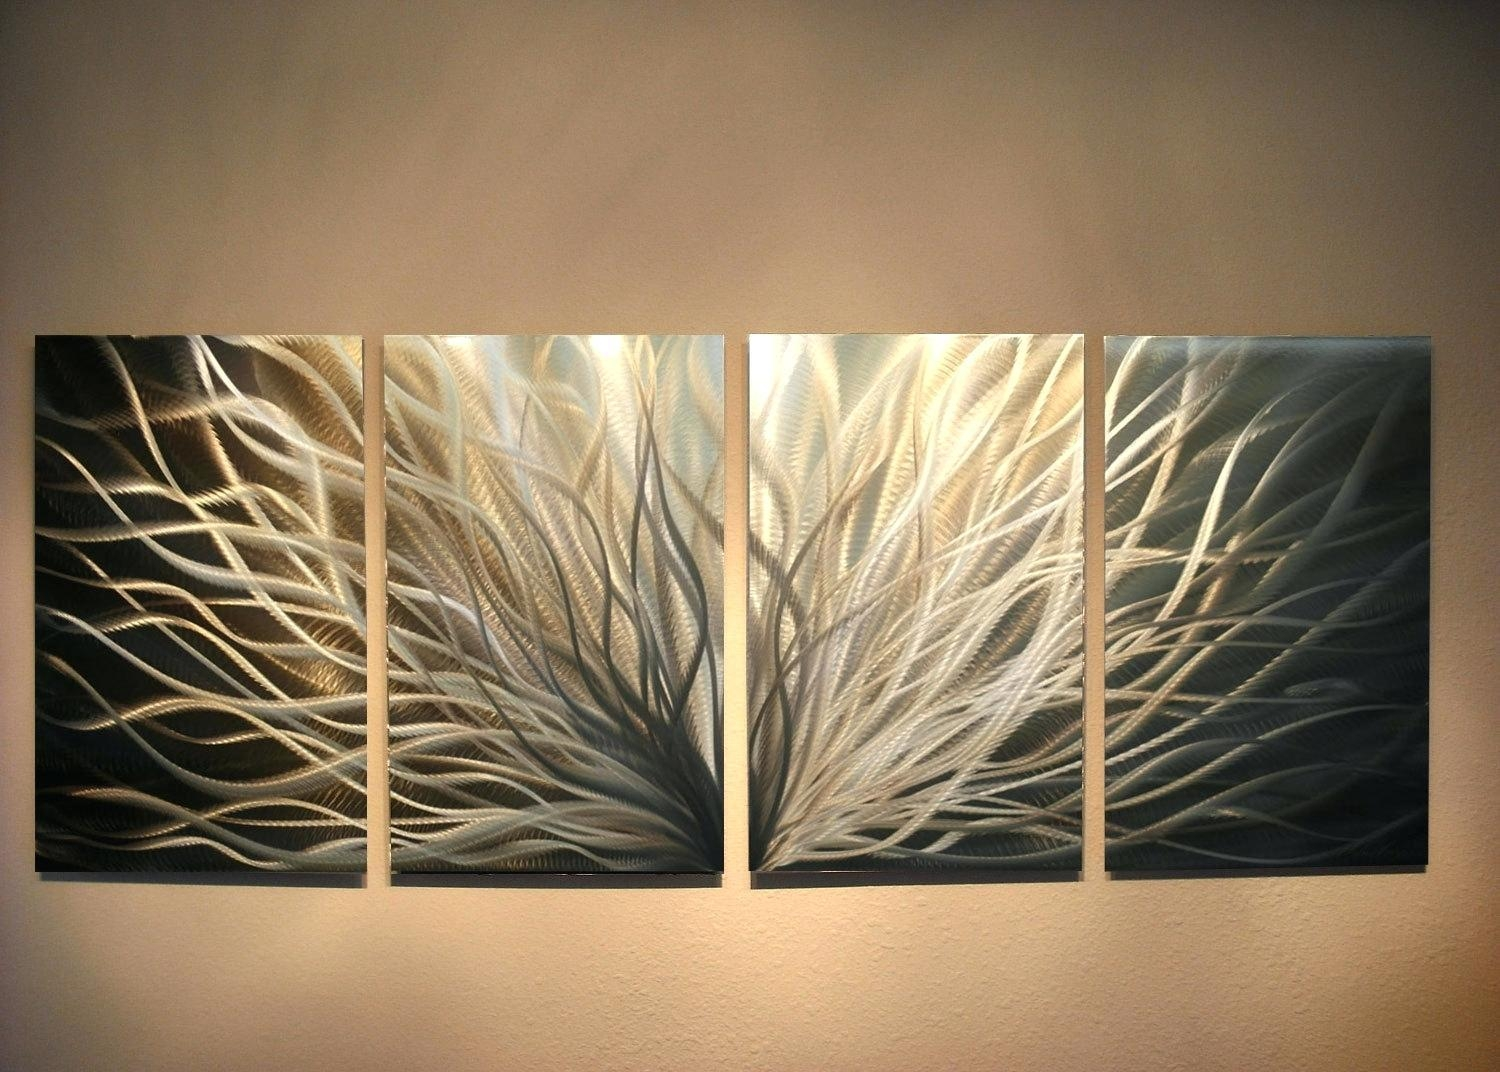 Wall Ideas : Wall Art Decor Ideas Wall Art Decor Images Best 25 Pertaining To Diy Metal Wall Art (View 4 of 20)